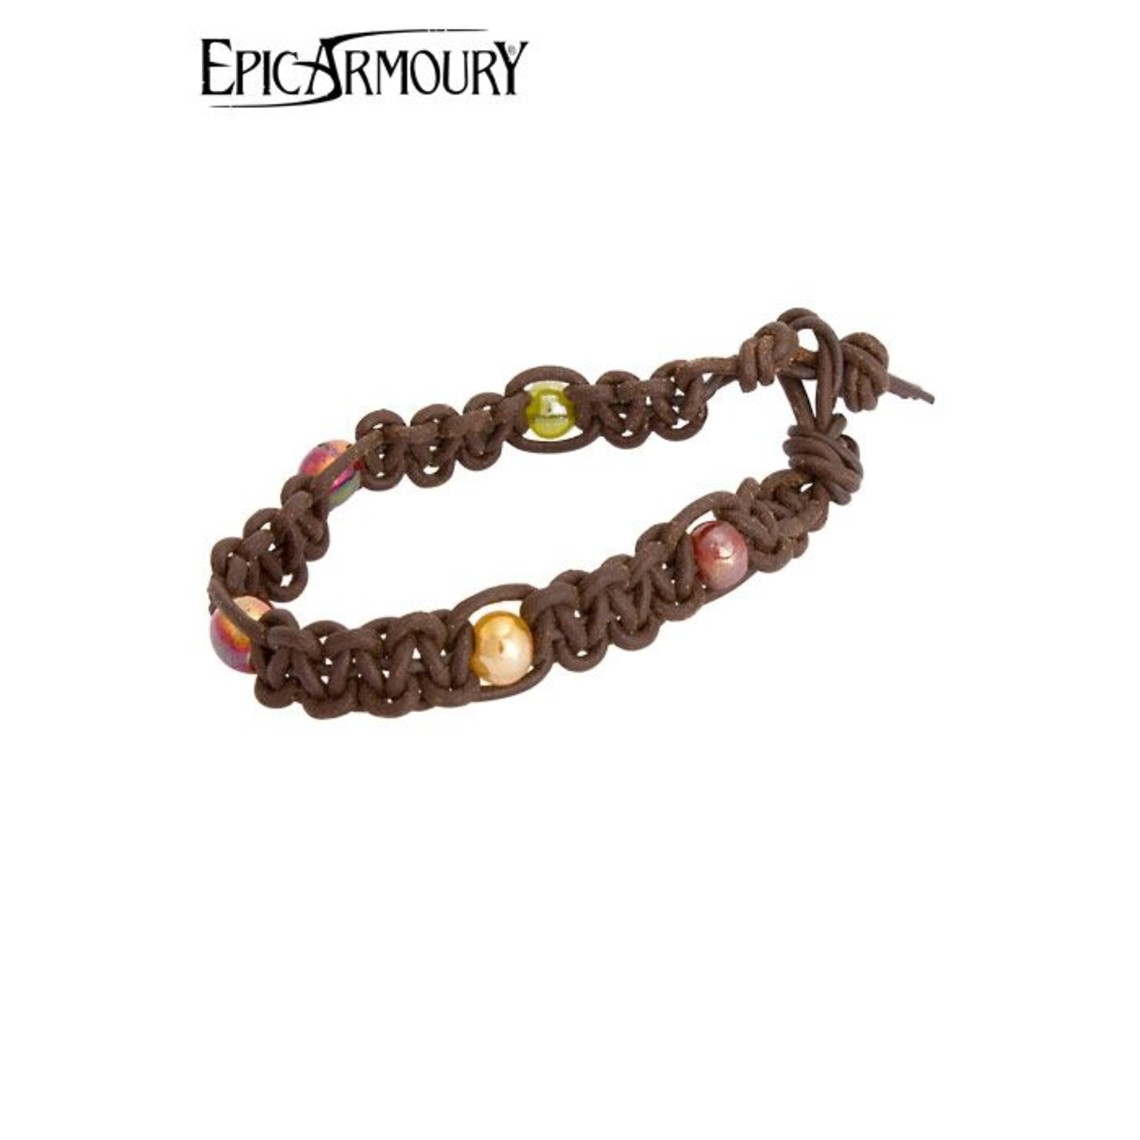 Epic Armoury Bracelet with Beads, Leather